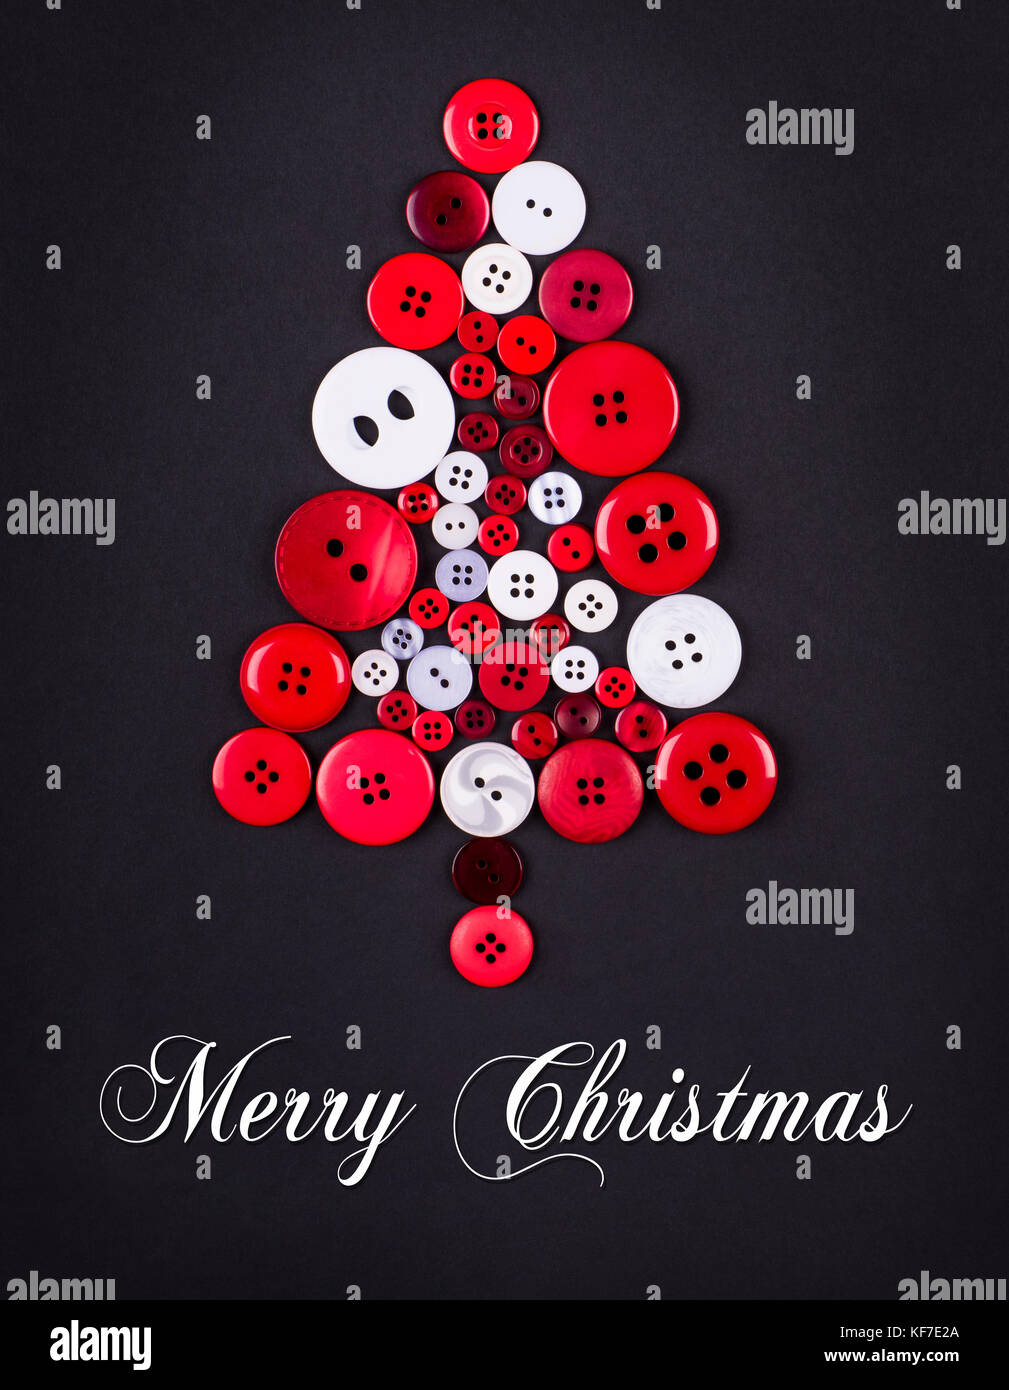 Unusual Christmas Tree Design, White And Red Buttons Tree Christmas  Background, Isolated On Dark Grey With Copy Space